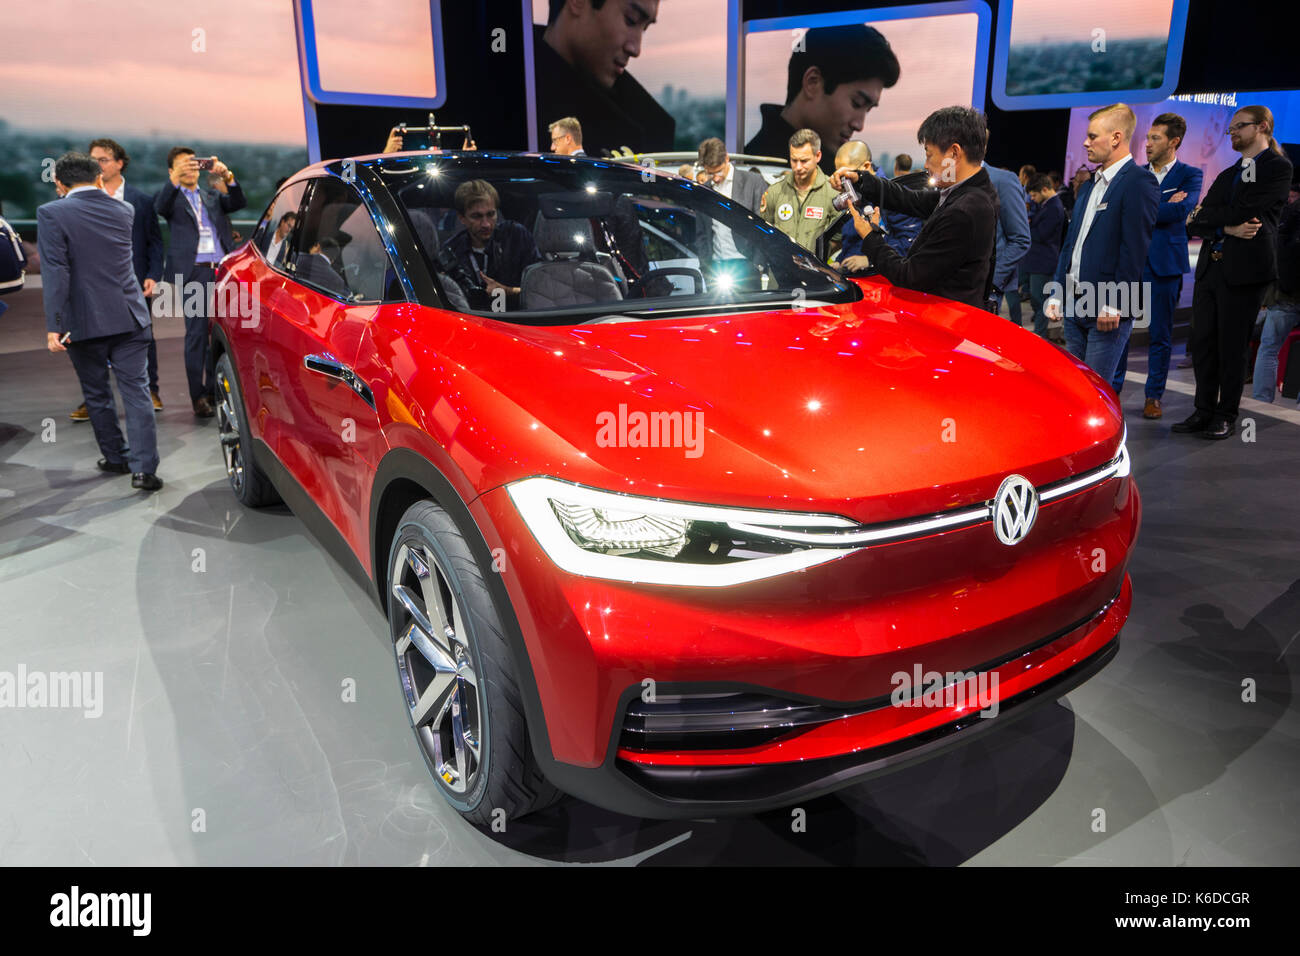 Vw Show Stock Photos Vw Show Stock Images Alamy